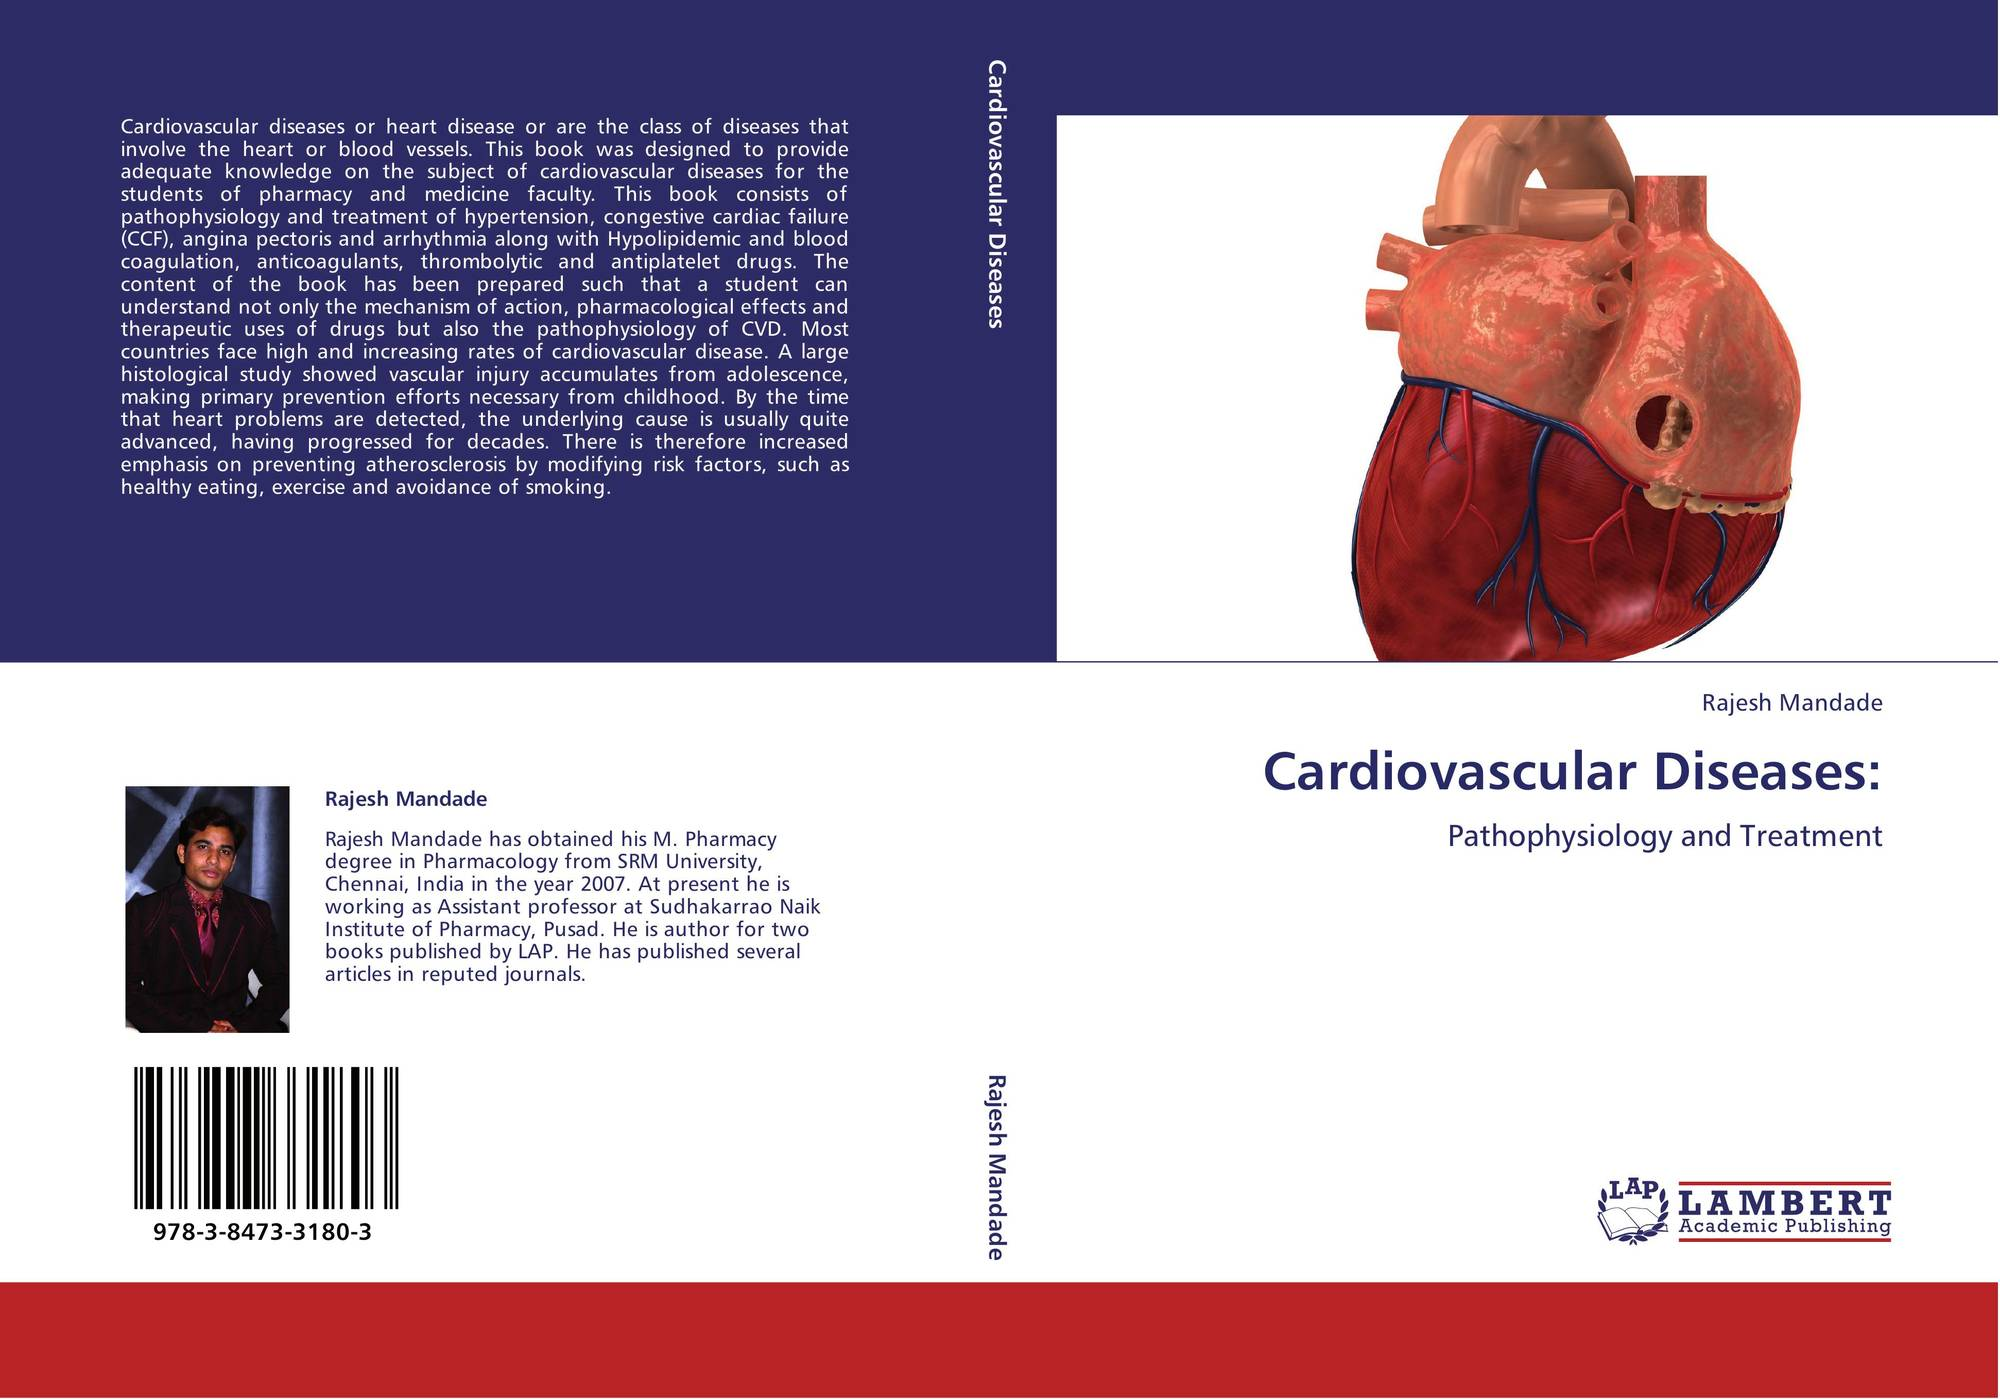 cardiovascular disorders Cardiovascular disease generally refers to conditions that involve narrowed or blocked blood such as connective tissue disorders, excessive iron buildup.